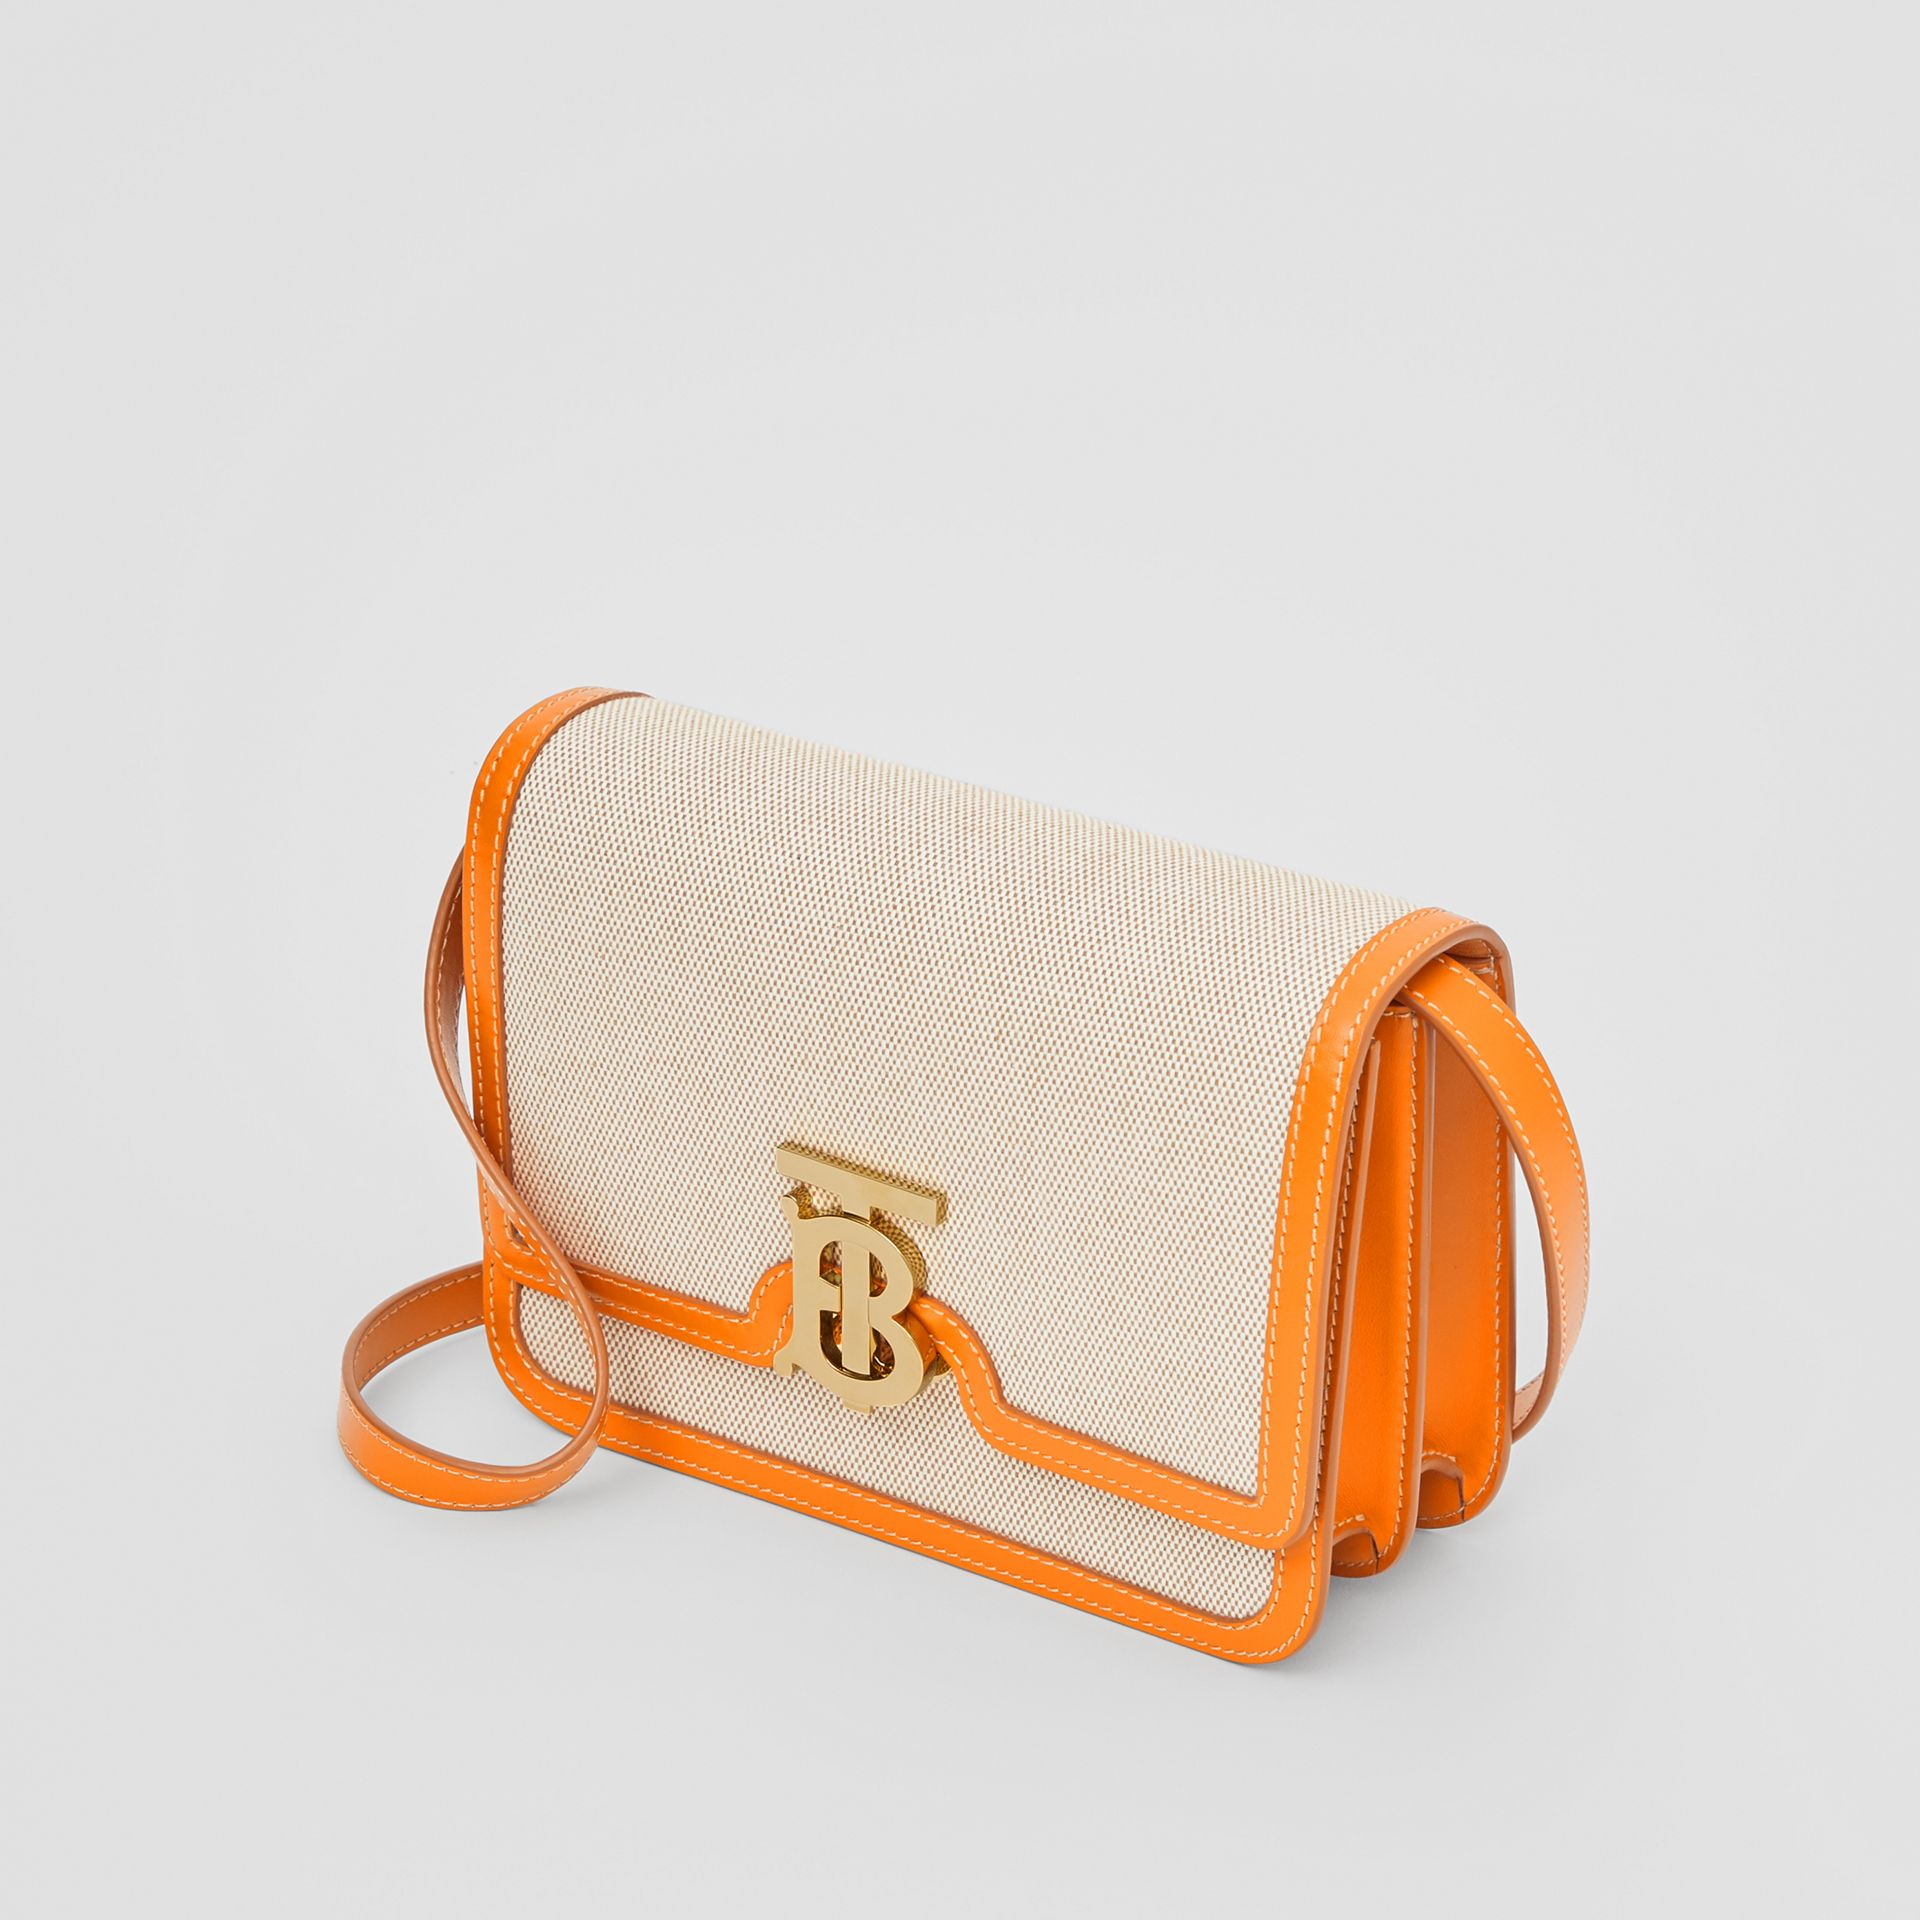 Small Two-tone Canvas and Leather TB Bag in Orange - Women | Burberry - gallery image 2